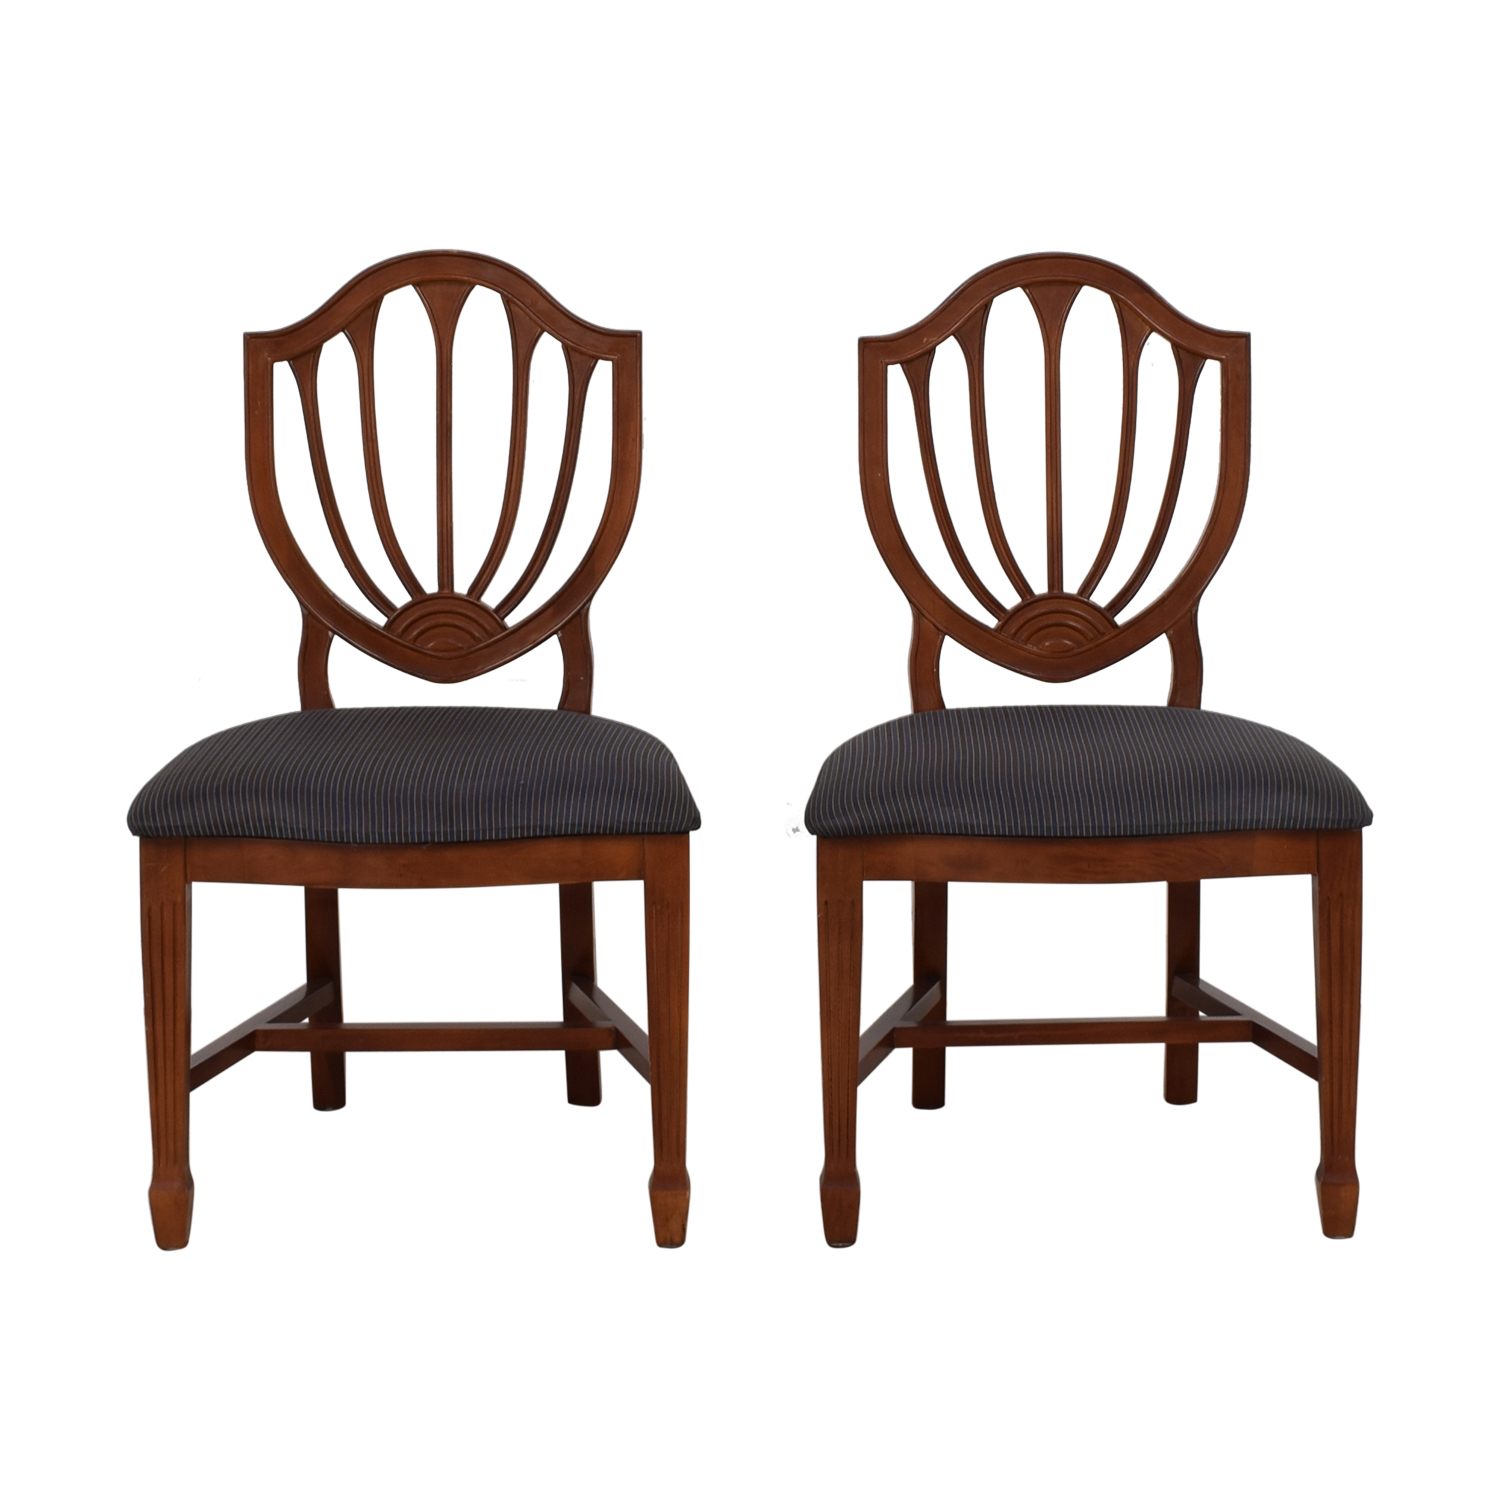 Blue Striped Upholstered Cherry Wood Accent Chairs sale